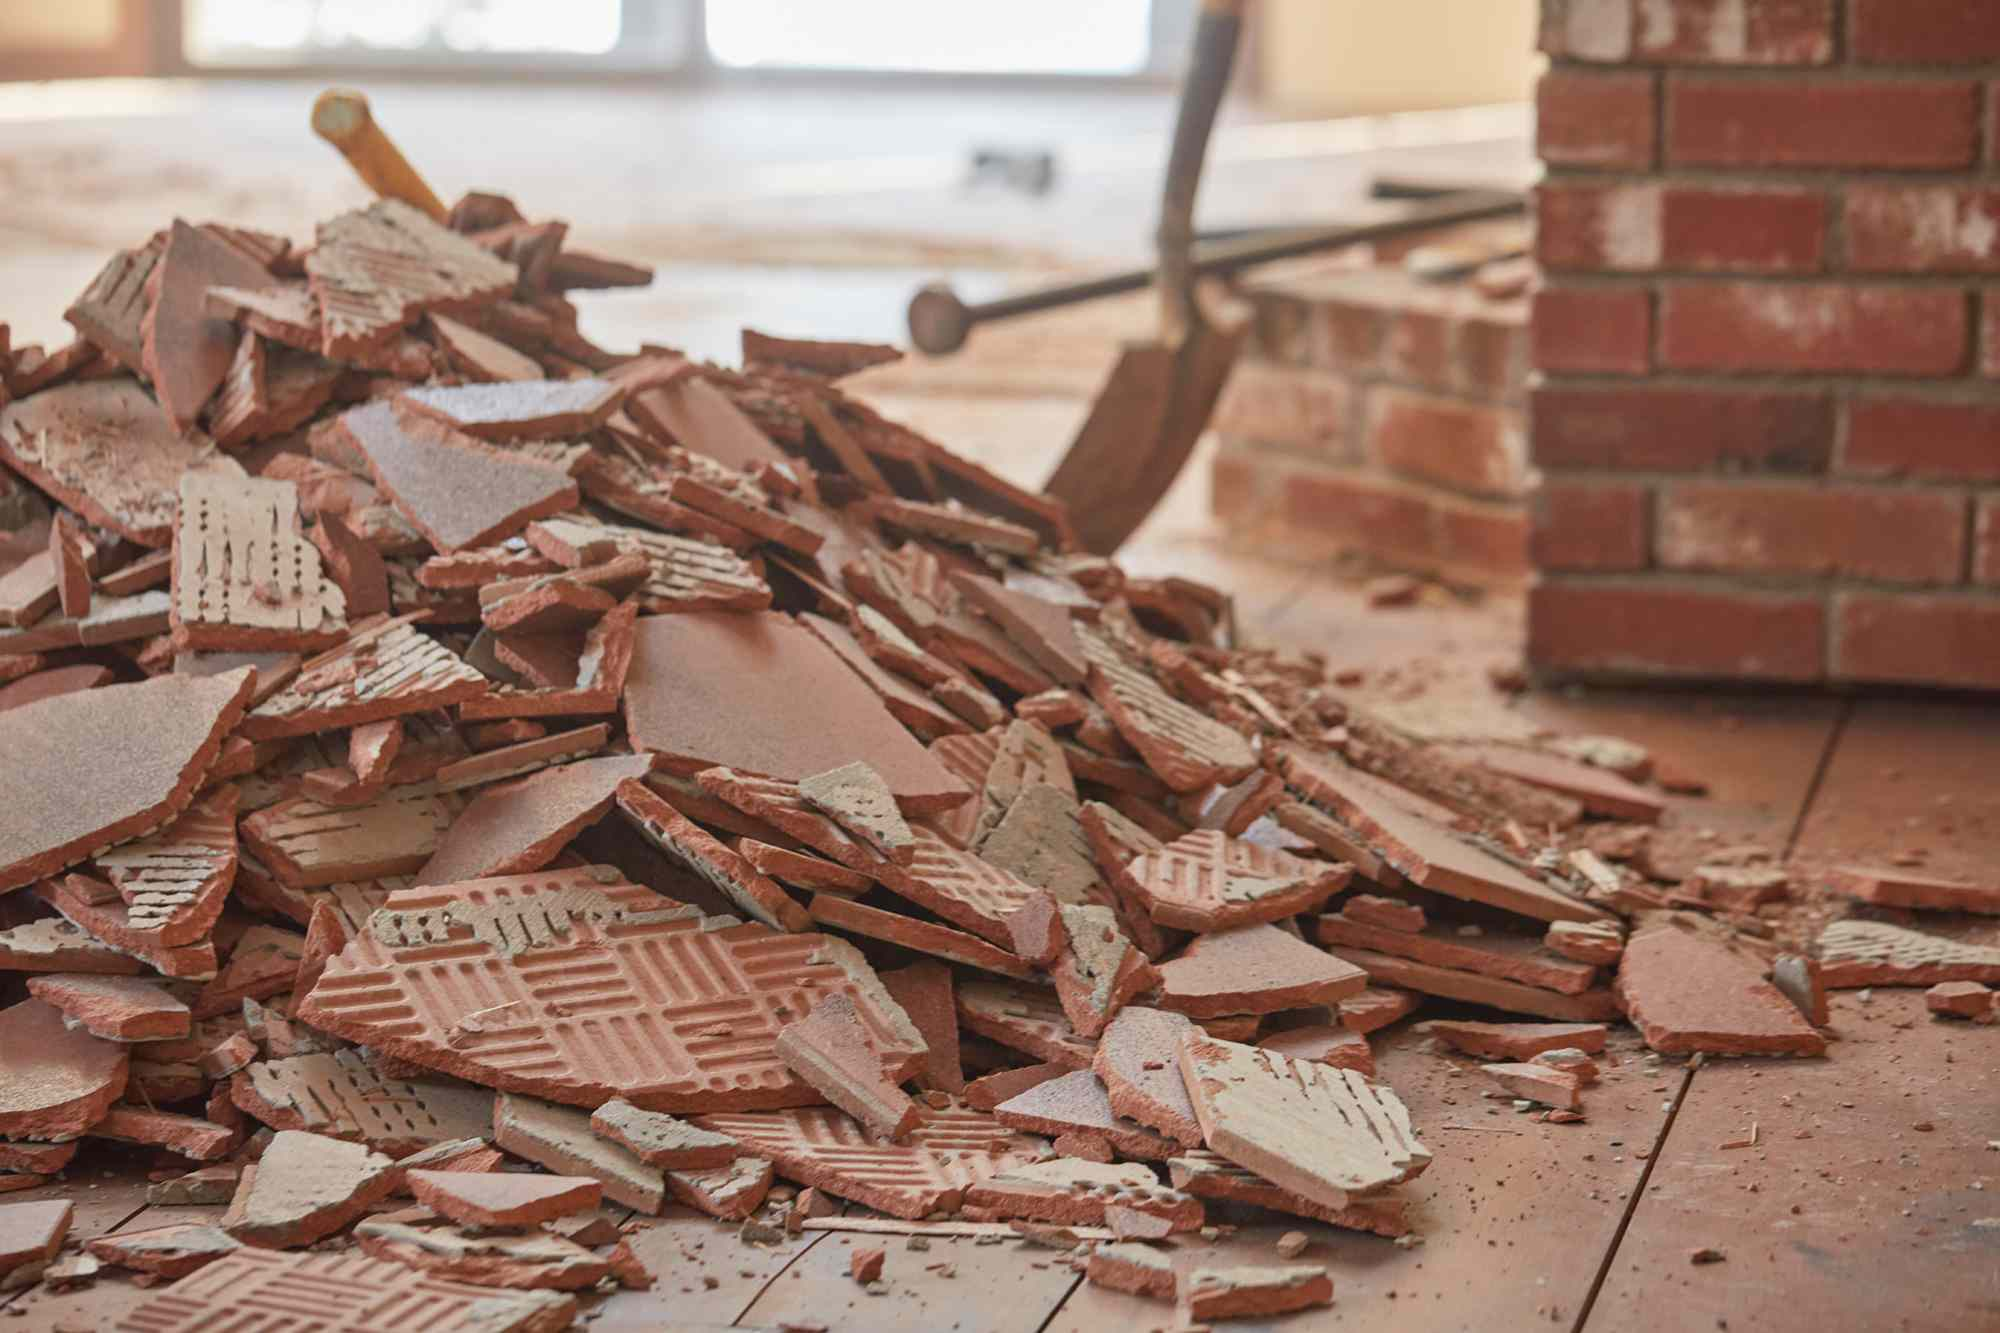 Pile of broken brown ceramic tile next to brick fireplace to be cleaned up